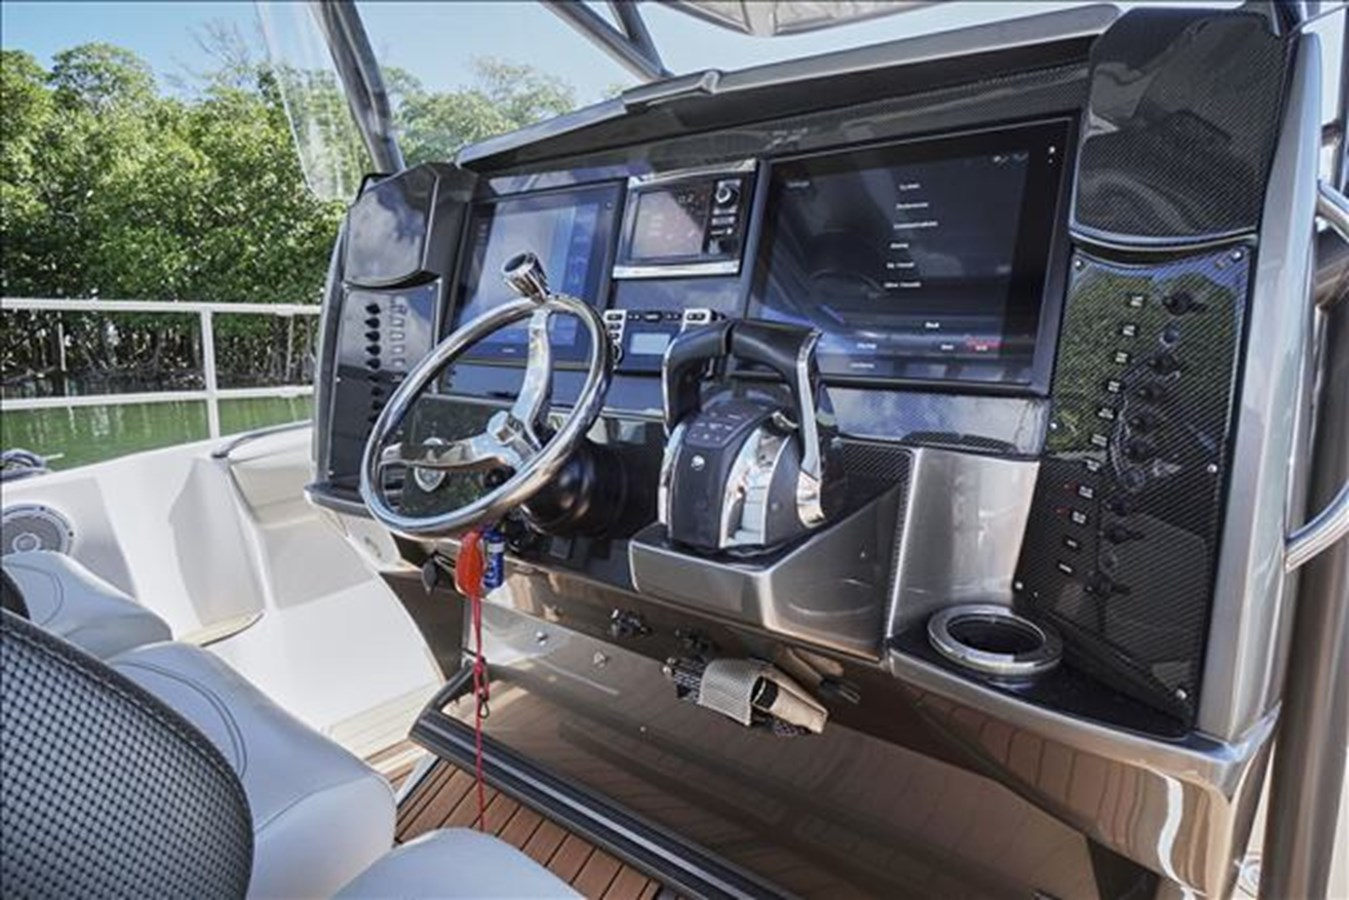 39-2015-Nor-Tech-Center-Console-22 2015 NOR-TECH Center Console Motor Yacht 2761406